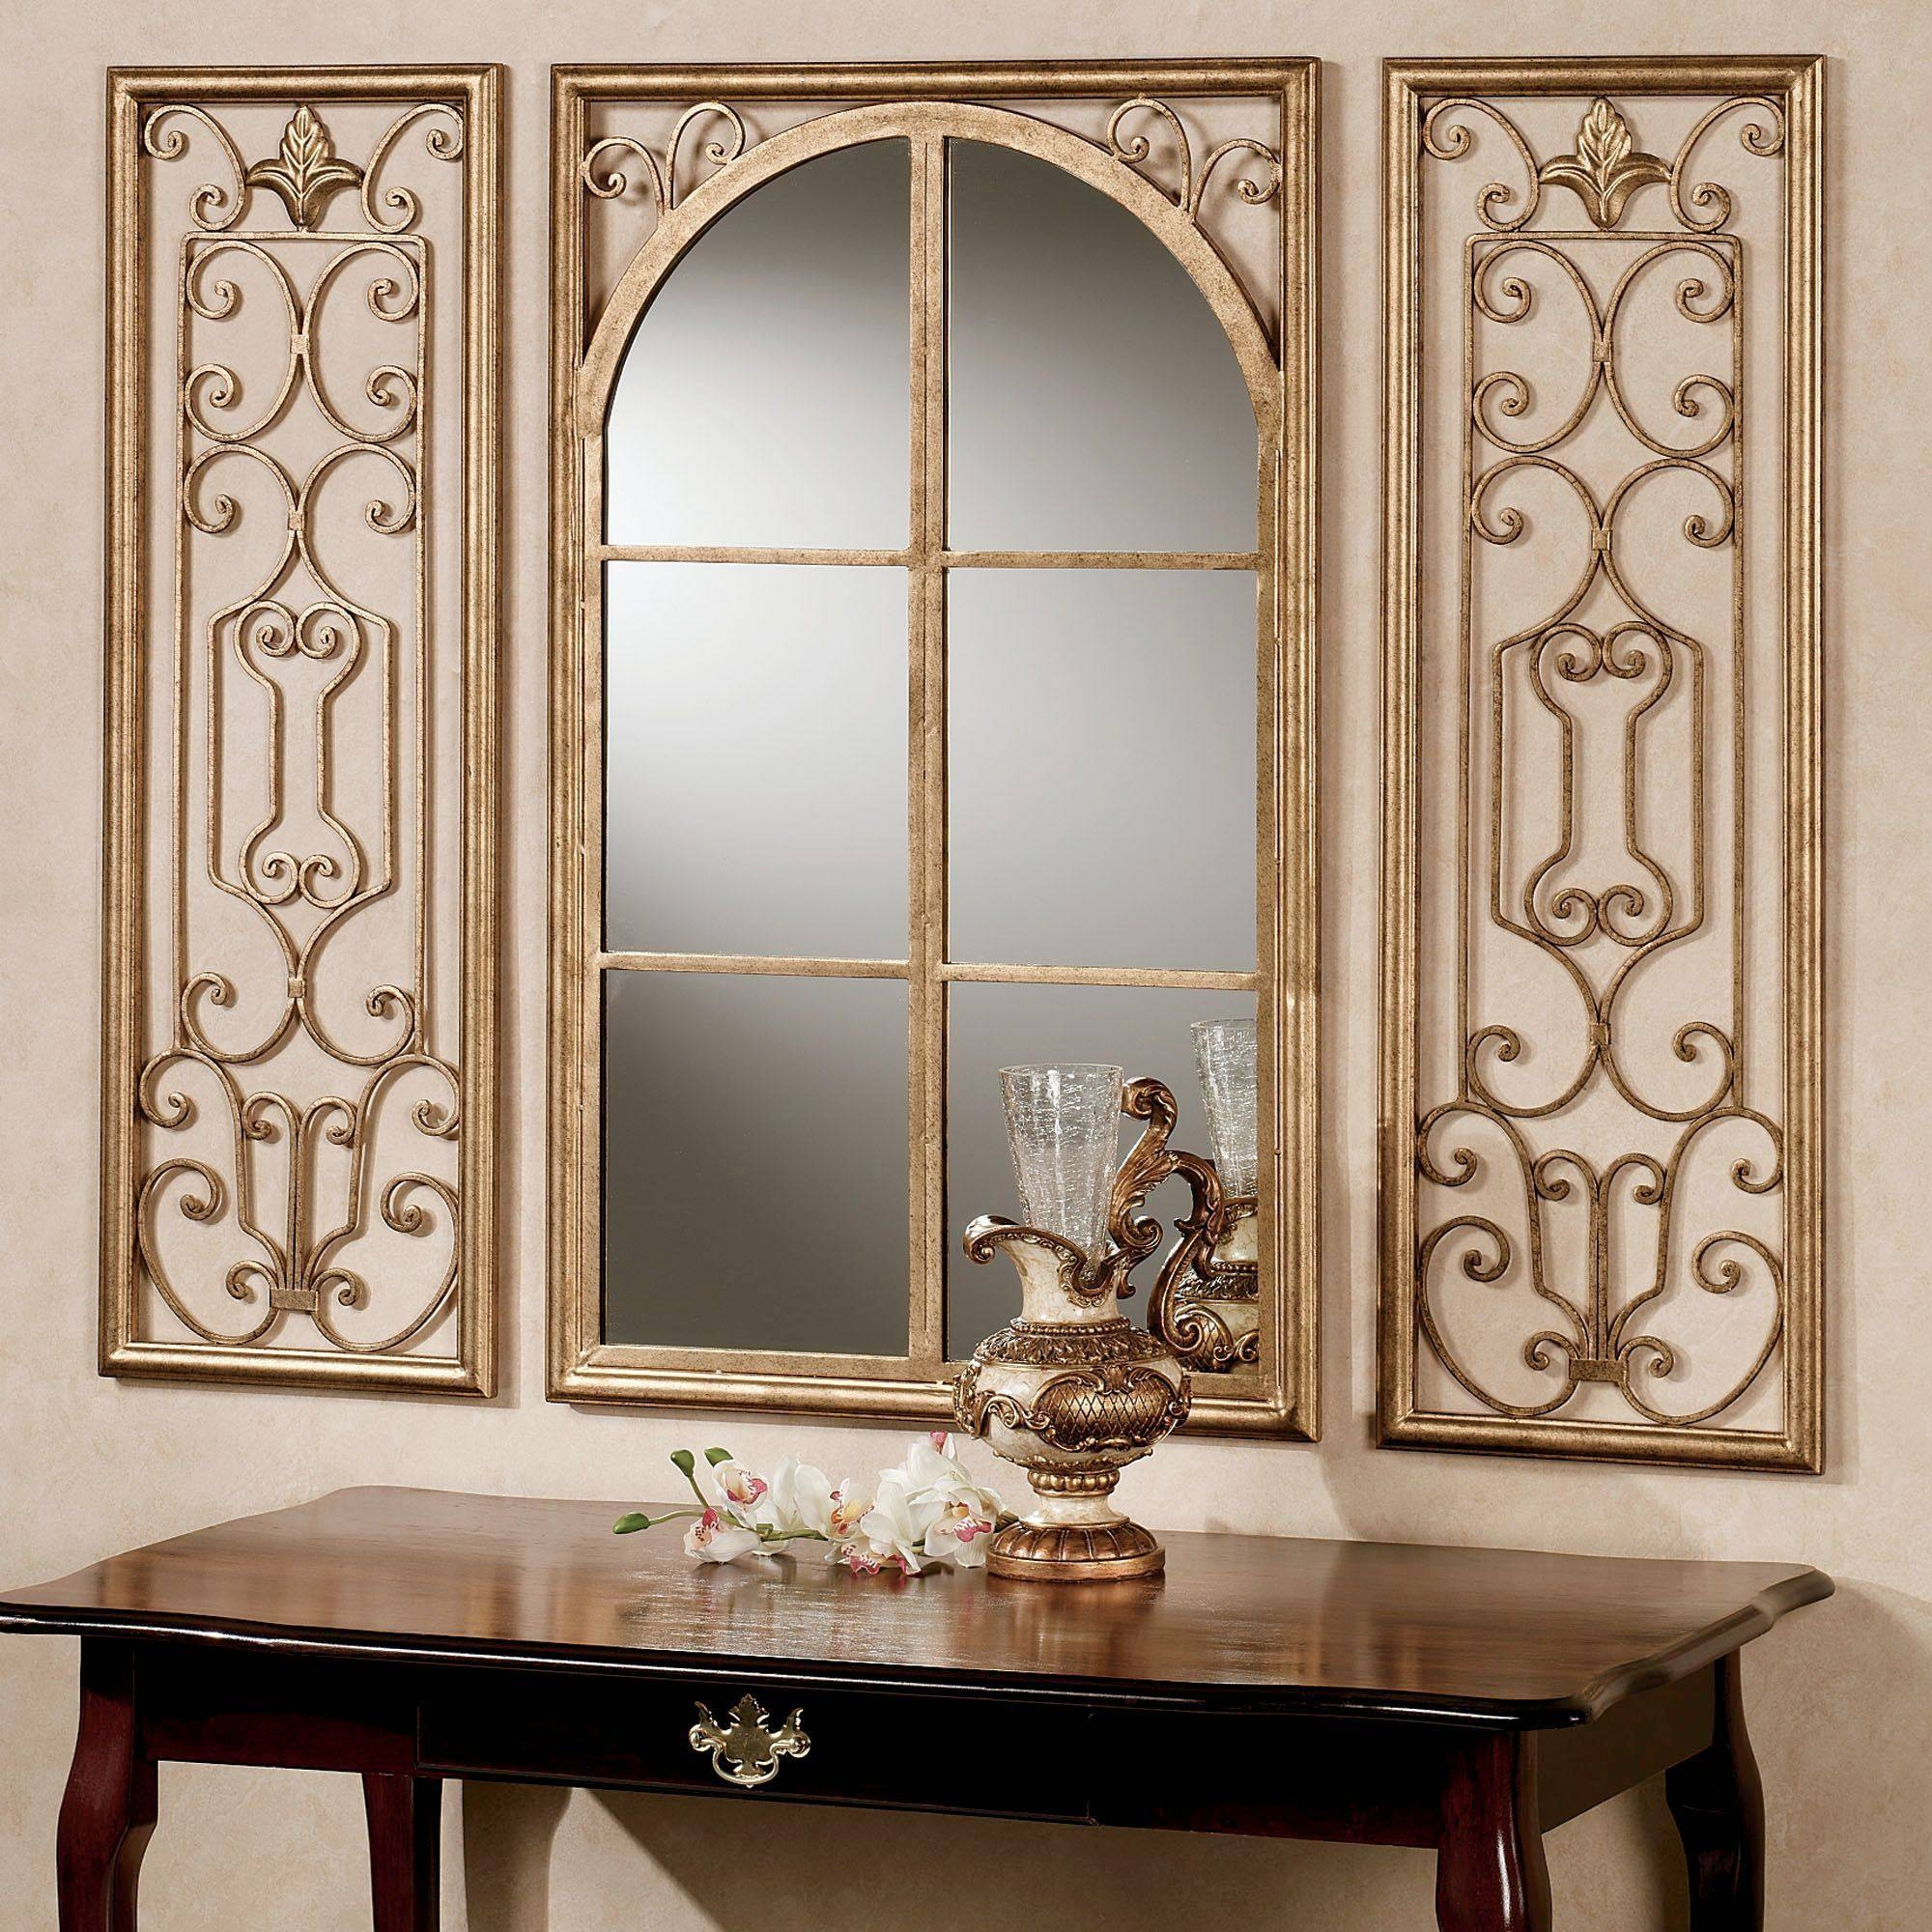 Provence Antique Gold Finish Wall Mirror Set Regarding Gold Wall Mirrors (View 2 of 15)